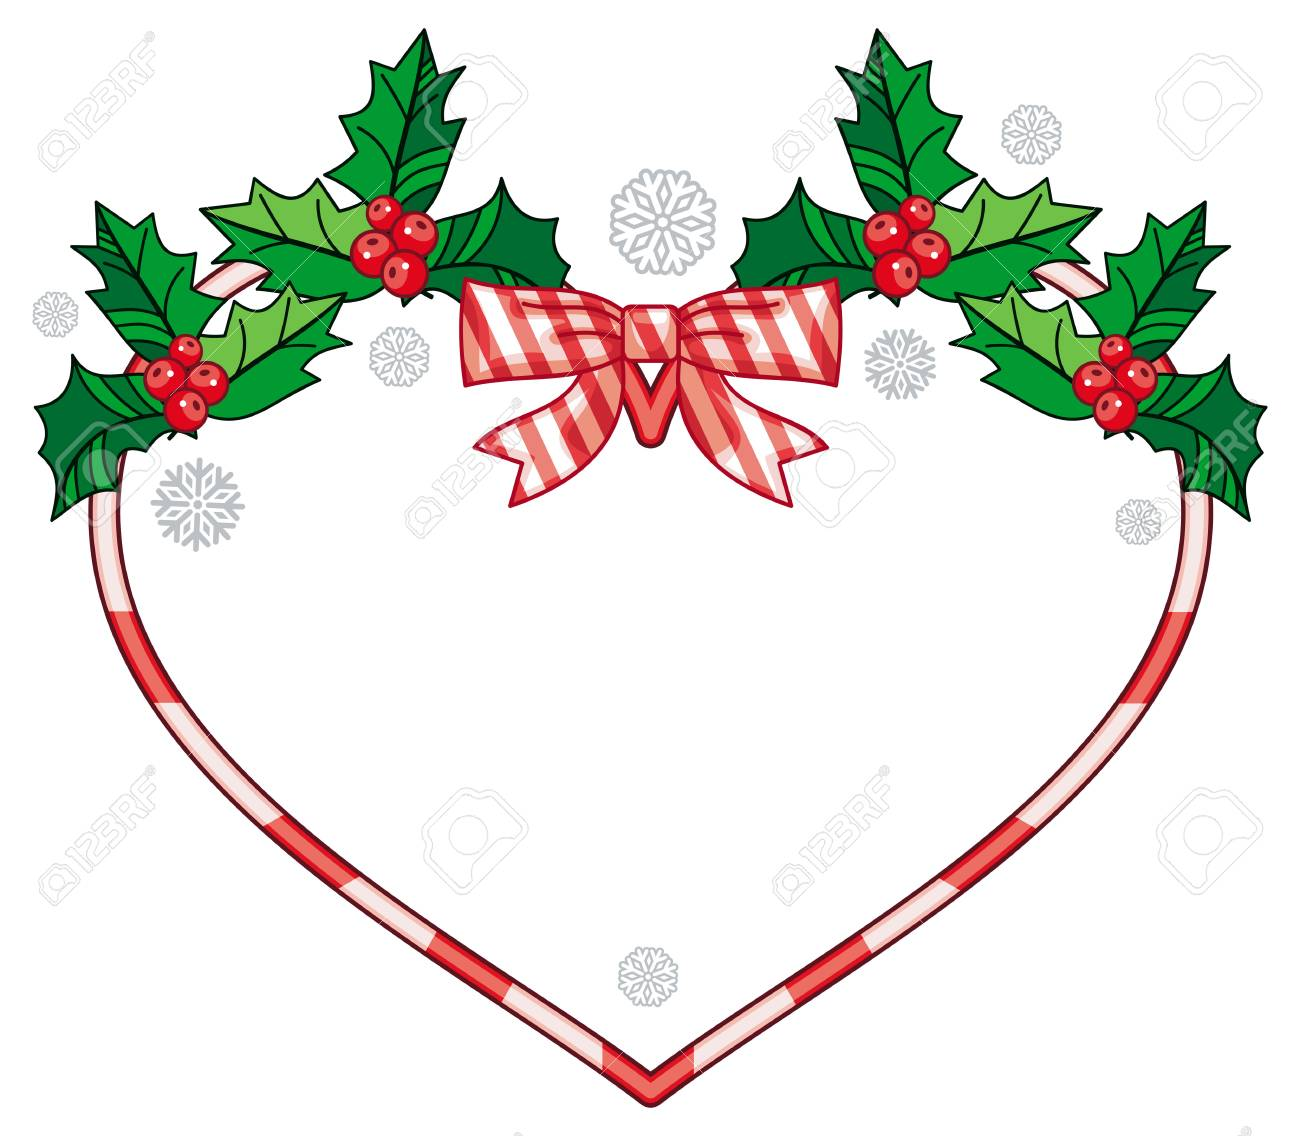 Christmas Heart Vector.Heart Shaped Frame With Christmas Decorations Holiday Design